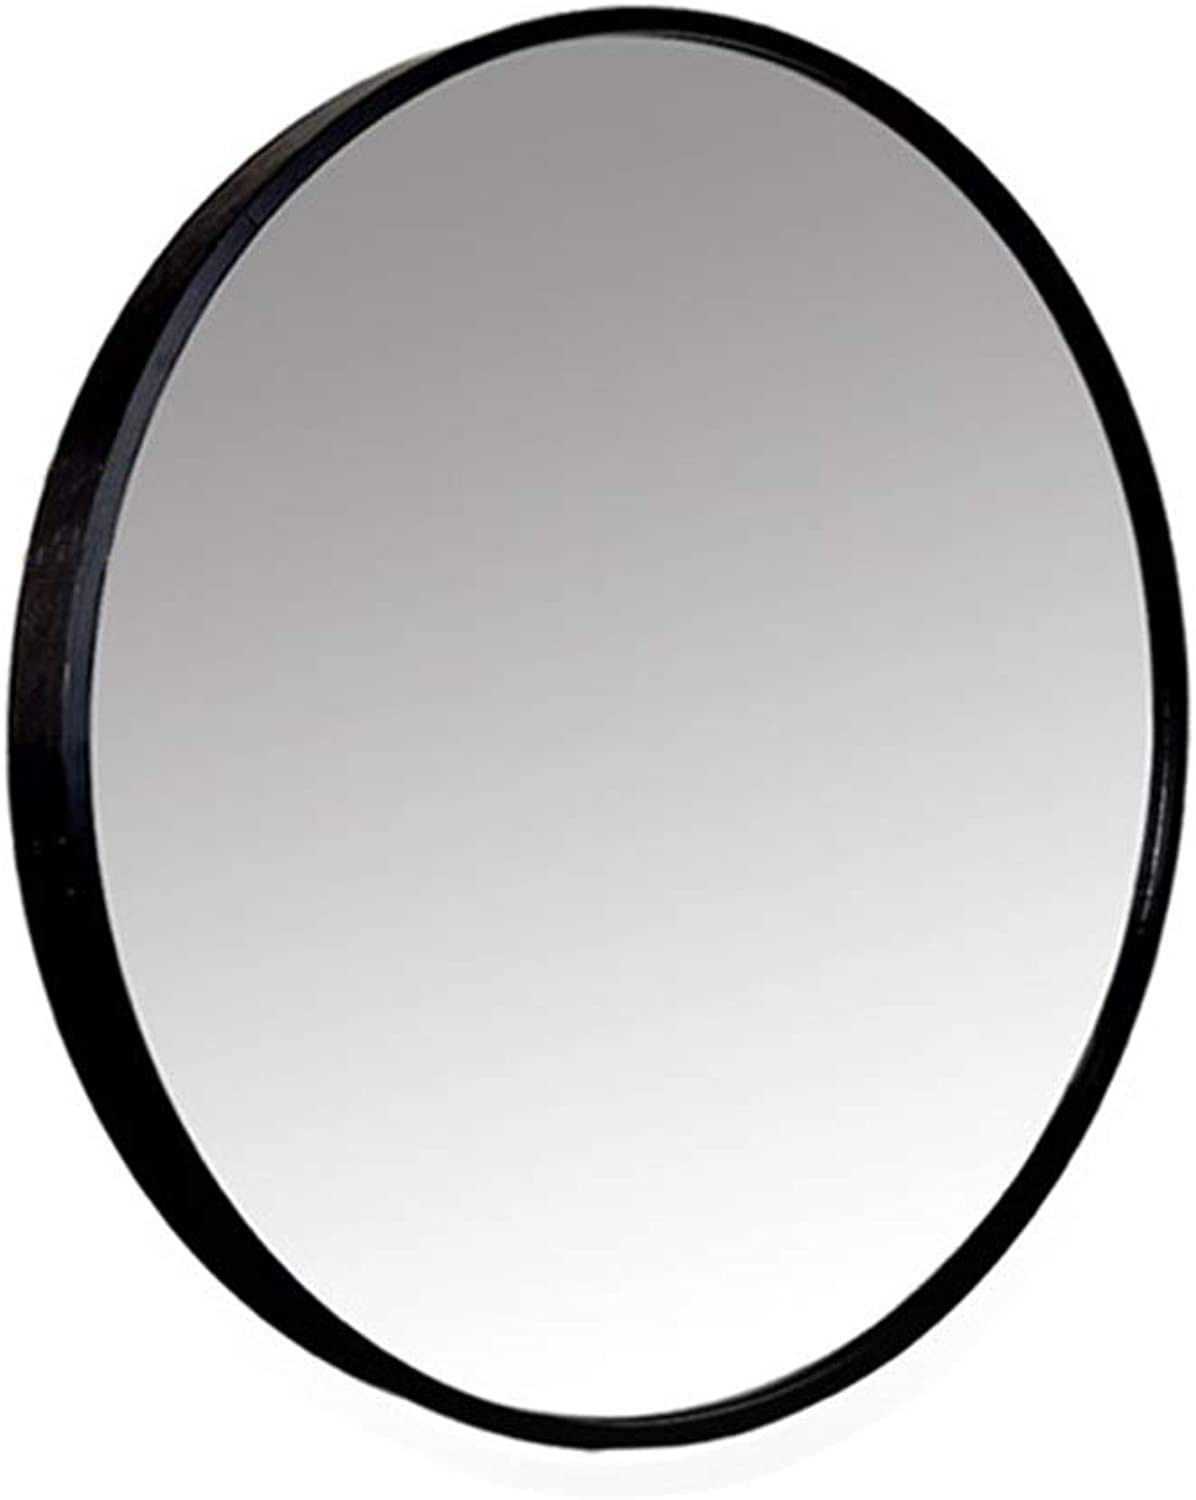 WXF Wall Mirror Decor Round, Contemporary Brushed Metal Black Wall Mirror Explosion-Proof Silver Mirror Glass Wall Mounted Mirror (color   Black, Size   30cm)